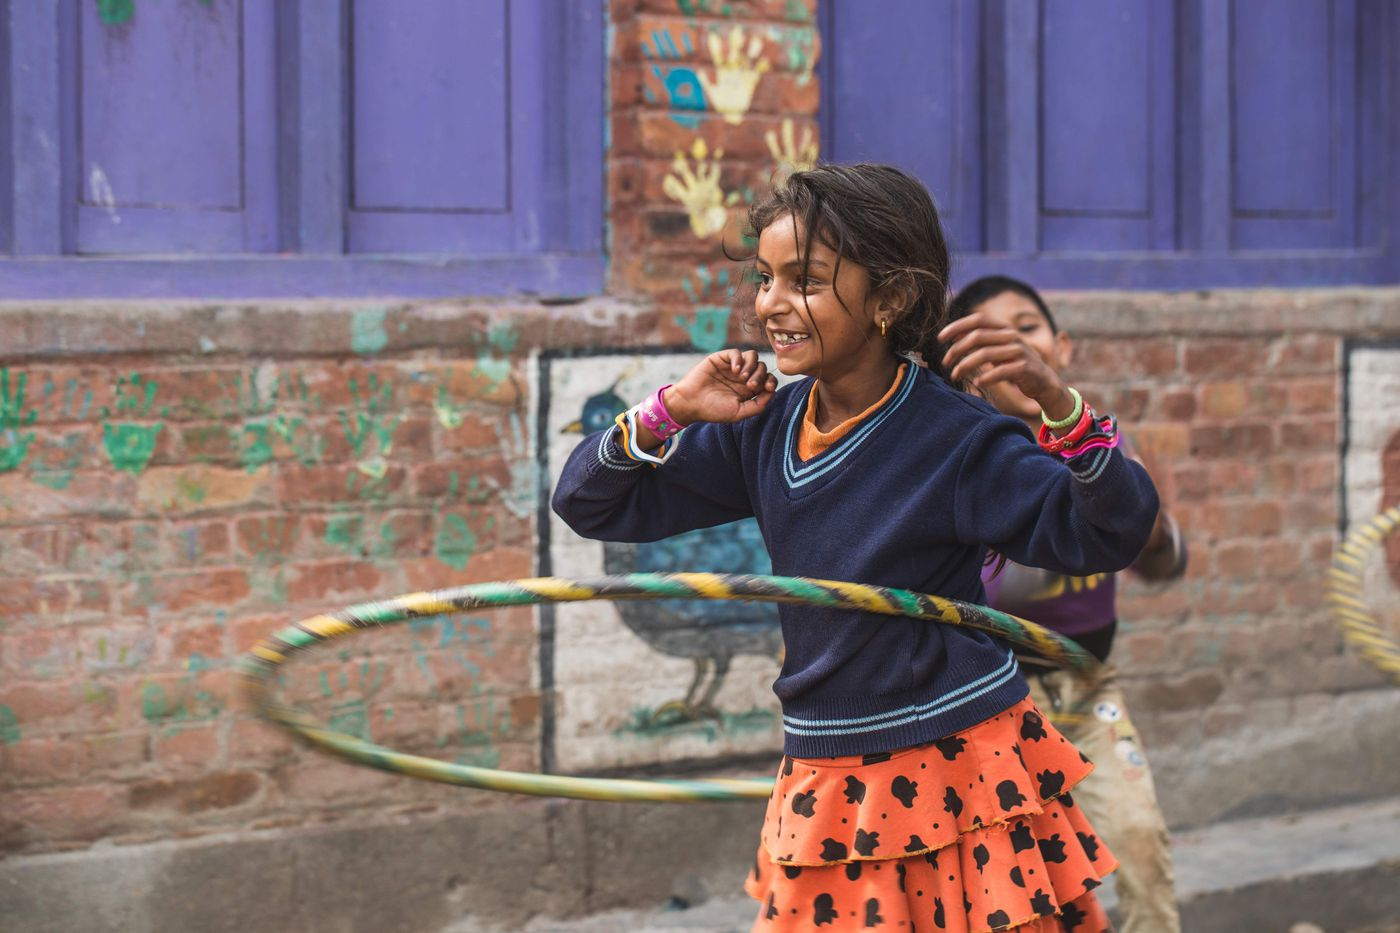 Laxmi, 8, plays with a Hula-Hoop at the Happy Kids Center. She is the first member of her family ever to attend school, as well as the first member of her family not to engage in child labor.